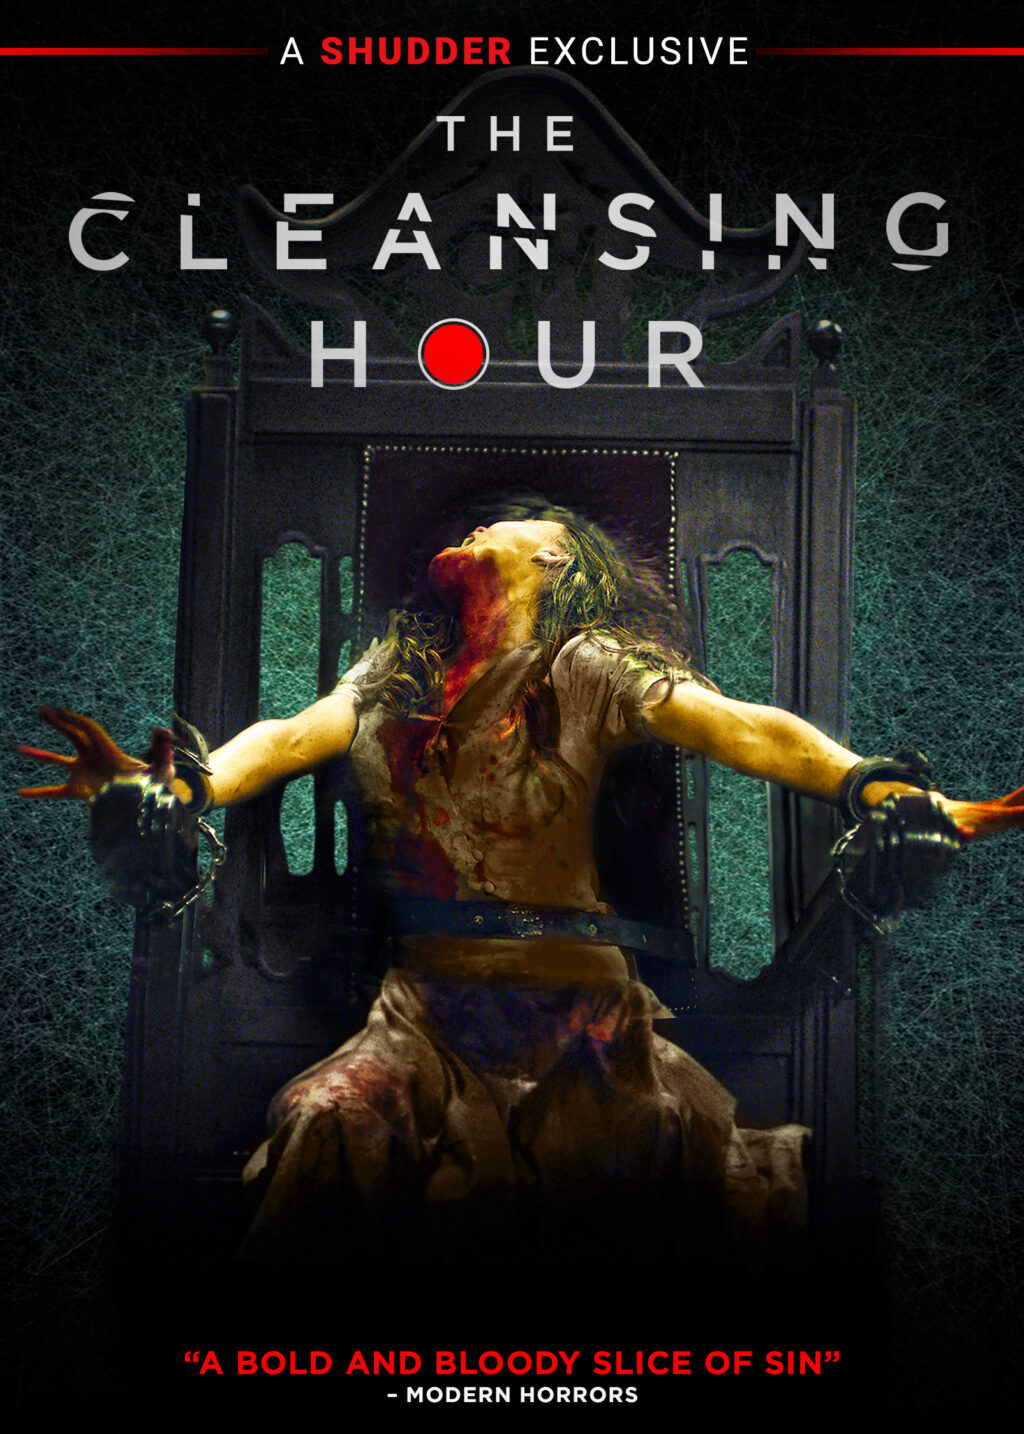 THE CLEANSING HOUR DVD HIC 1 1024x1434 - Contest: Win Extreme Possession Horror THE CLEANSING HOUR on DVD!